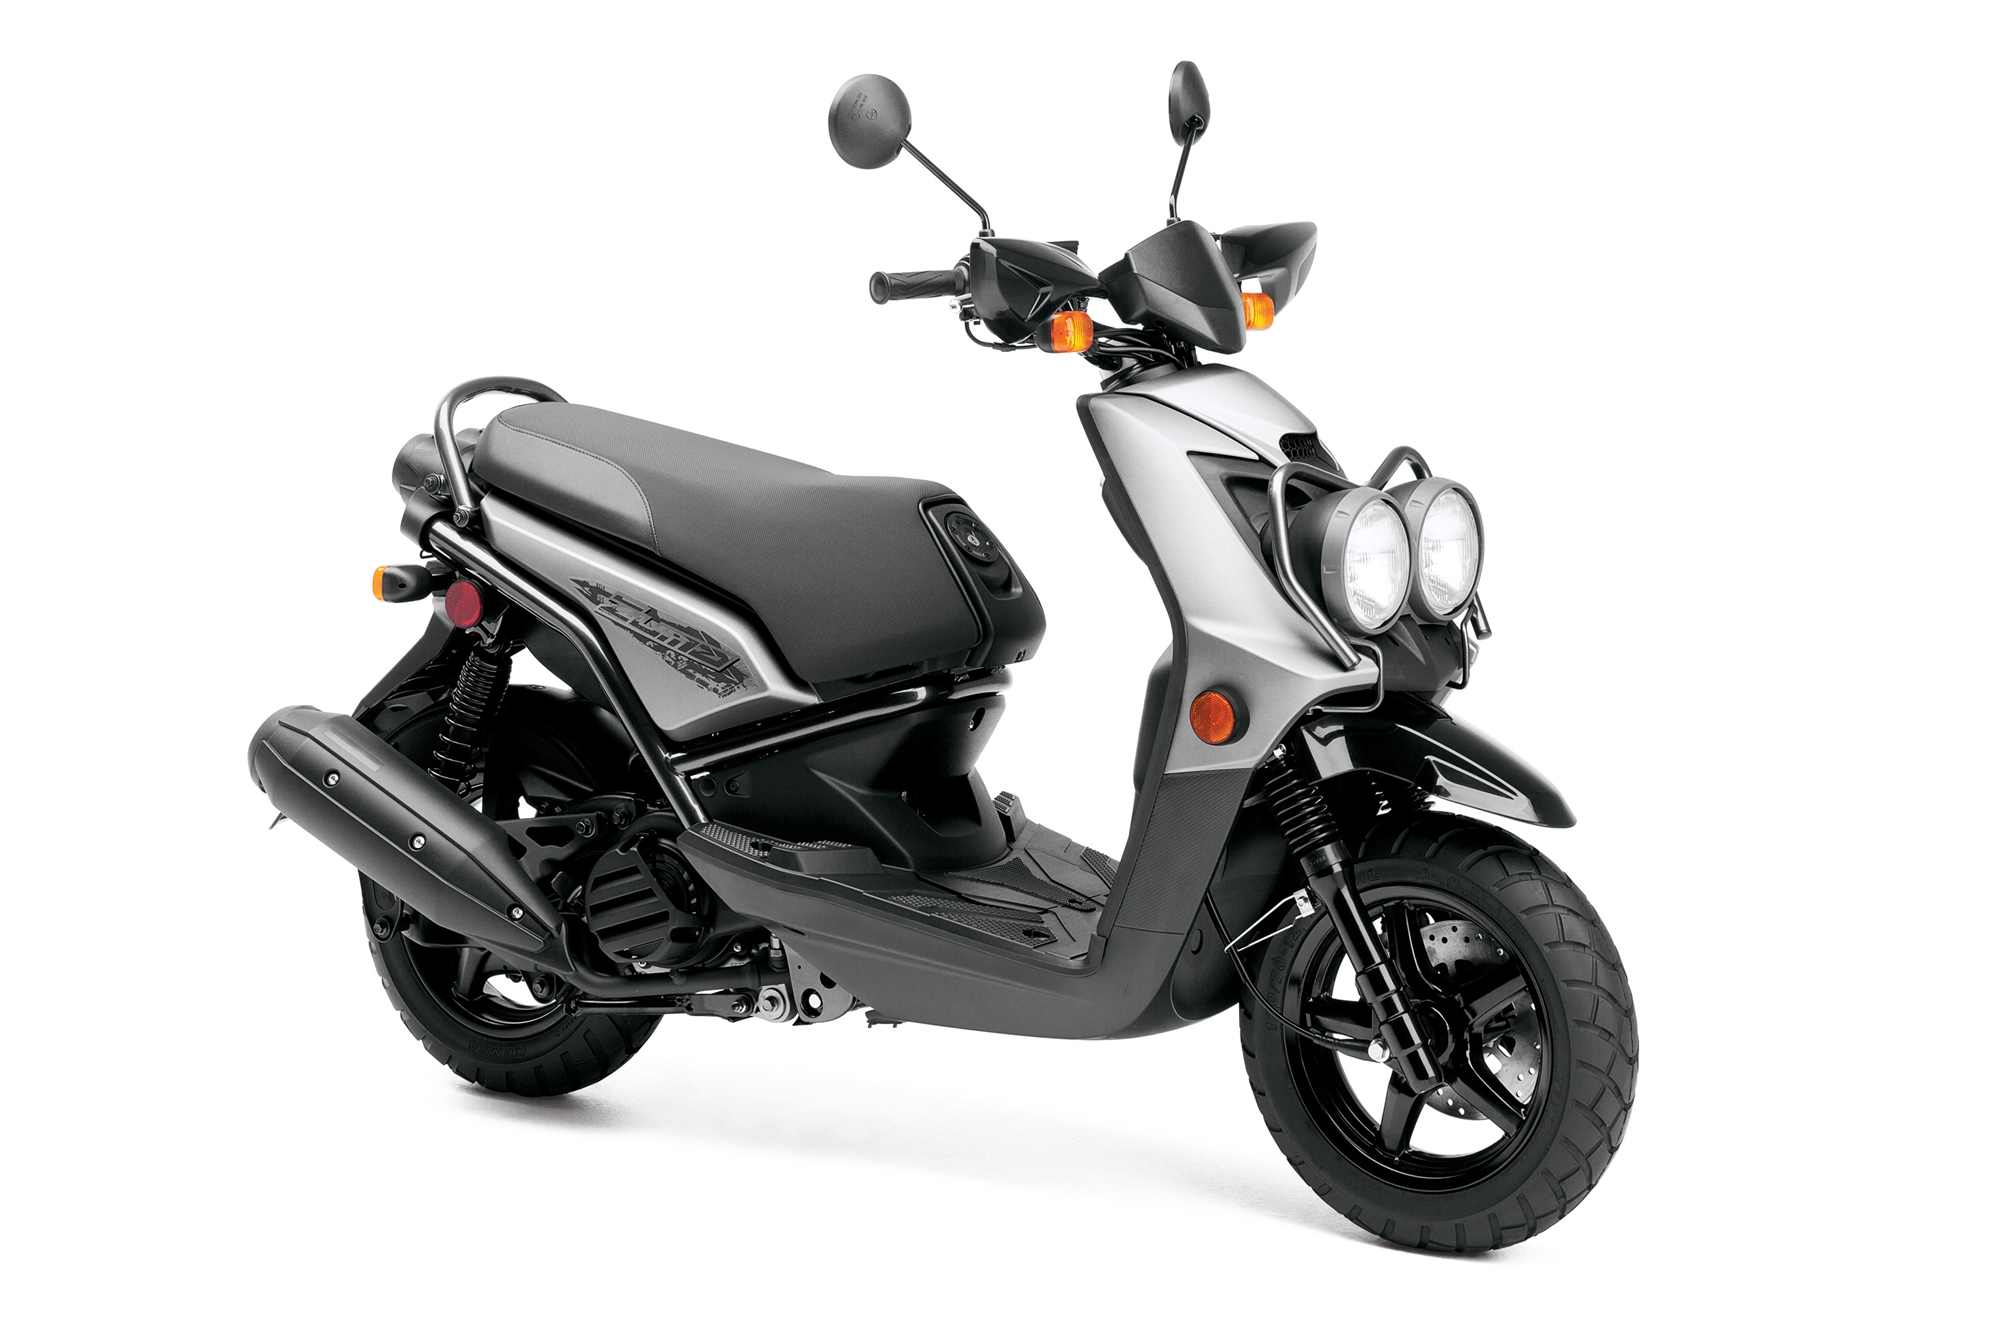 yamaha zuma 125 specs 2013 2014 autoevolution. Black Bedroom Furniture Sets. Home Design Ideas